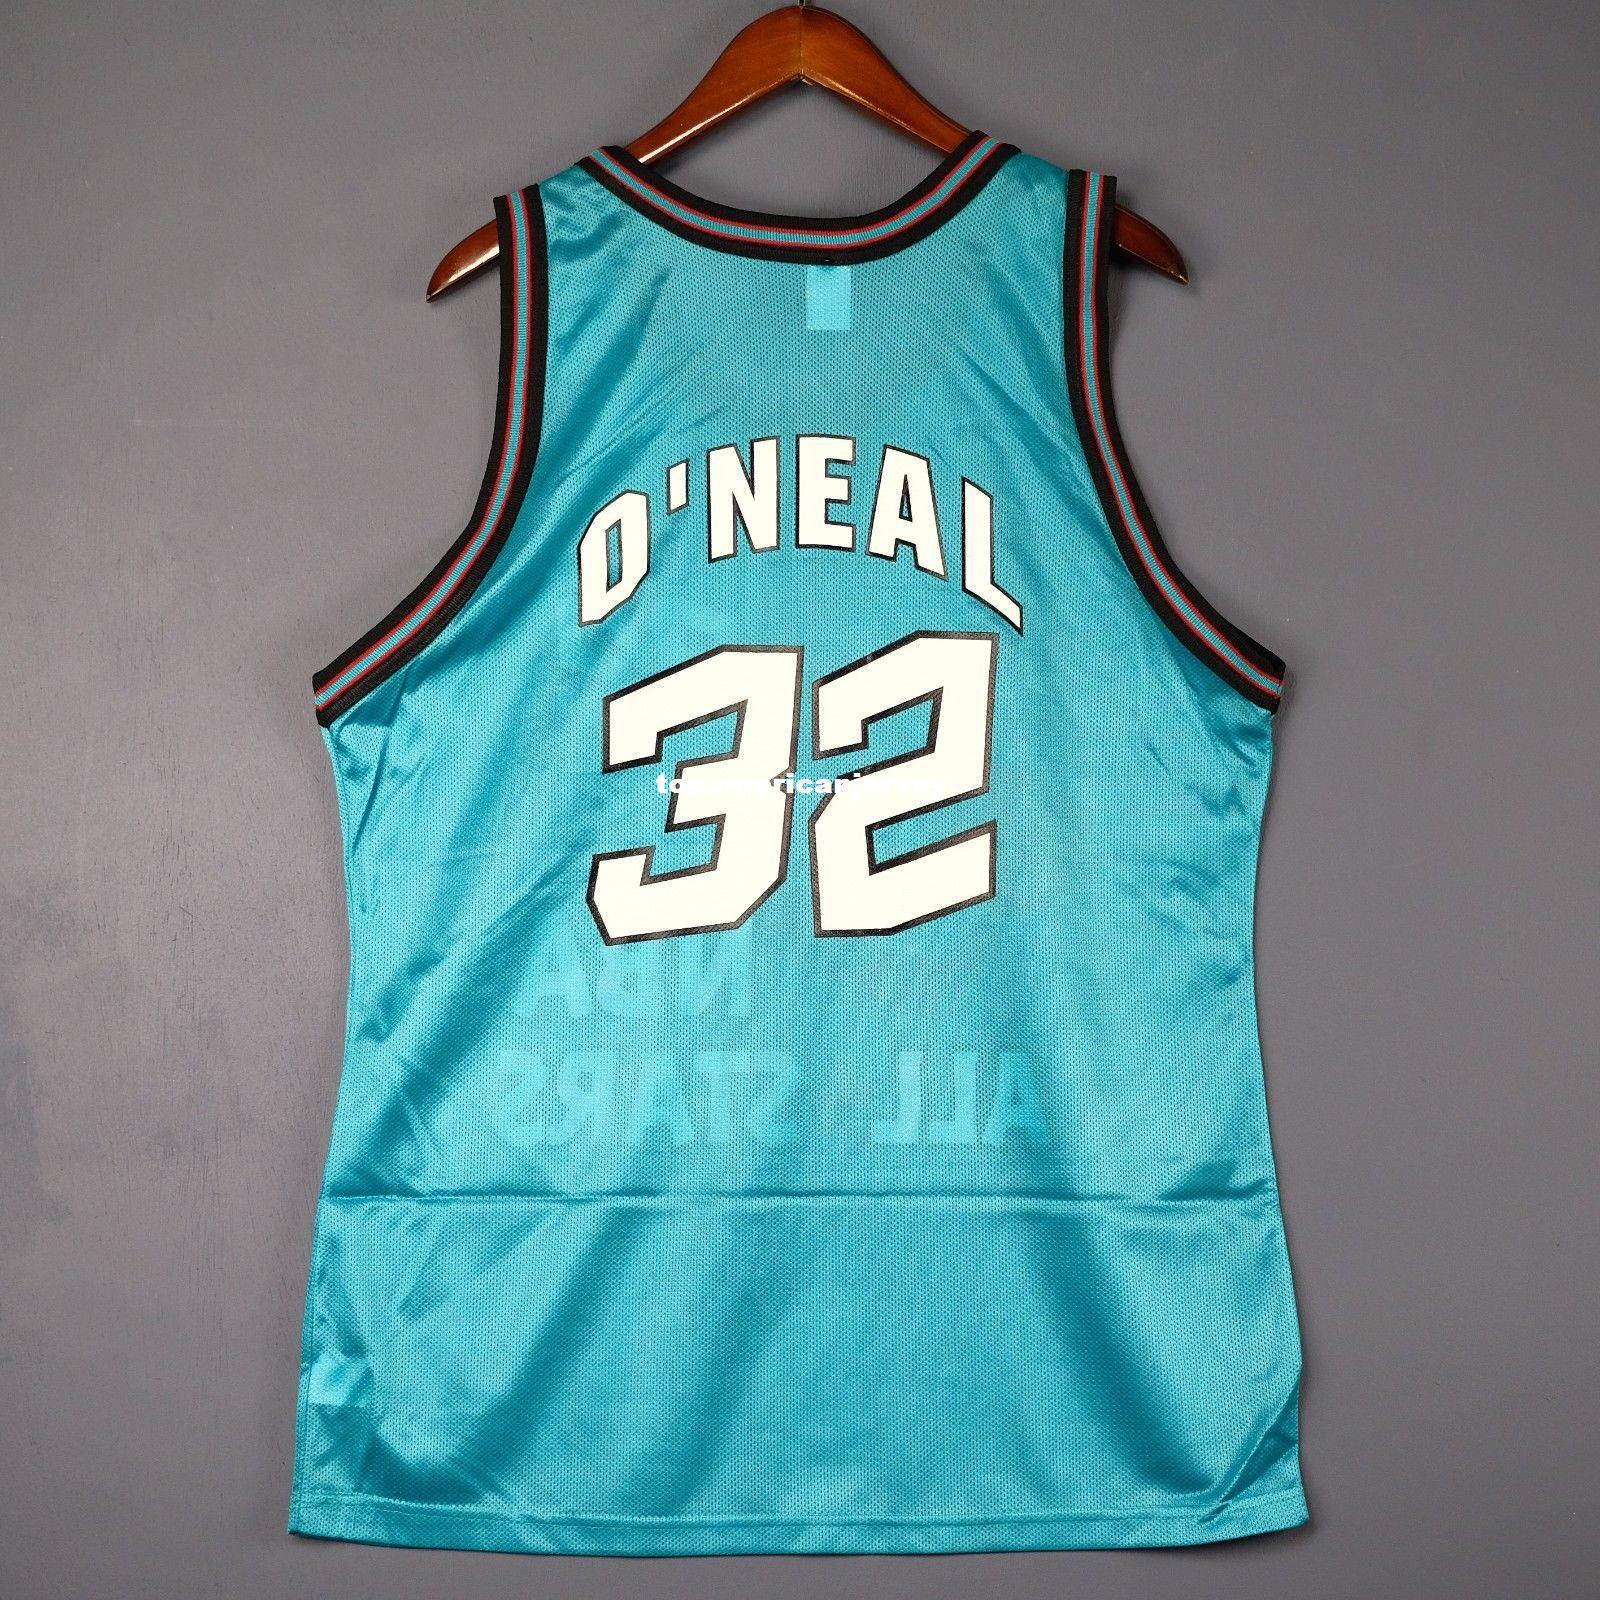 100% Stitched  32 Shaquille O Neal Champion 1996 All Star Jersey M Shaq  Mens Vest Size XS 6XL Stitched Basketball Jerseys Ncaa UK 2019 From ... 740f01e49